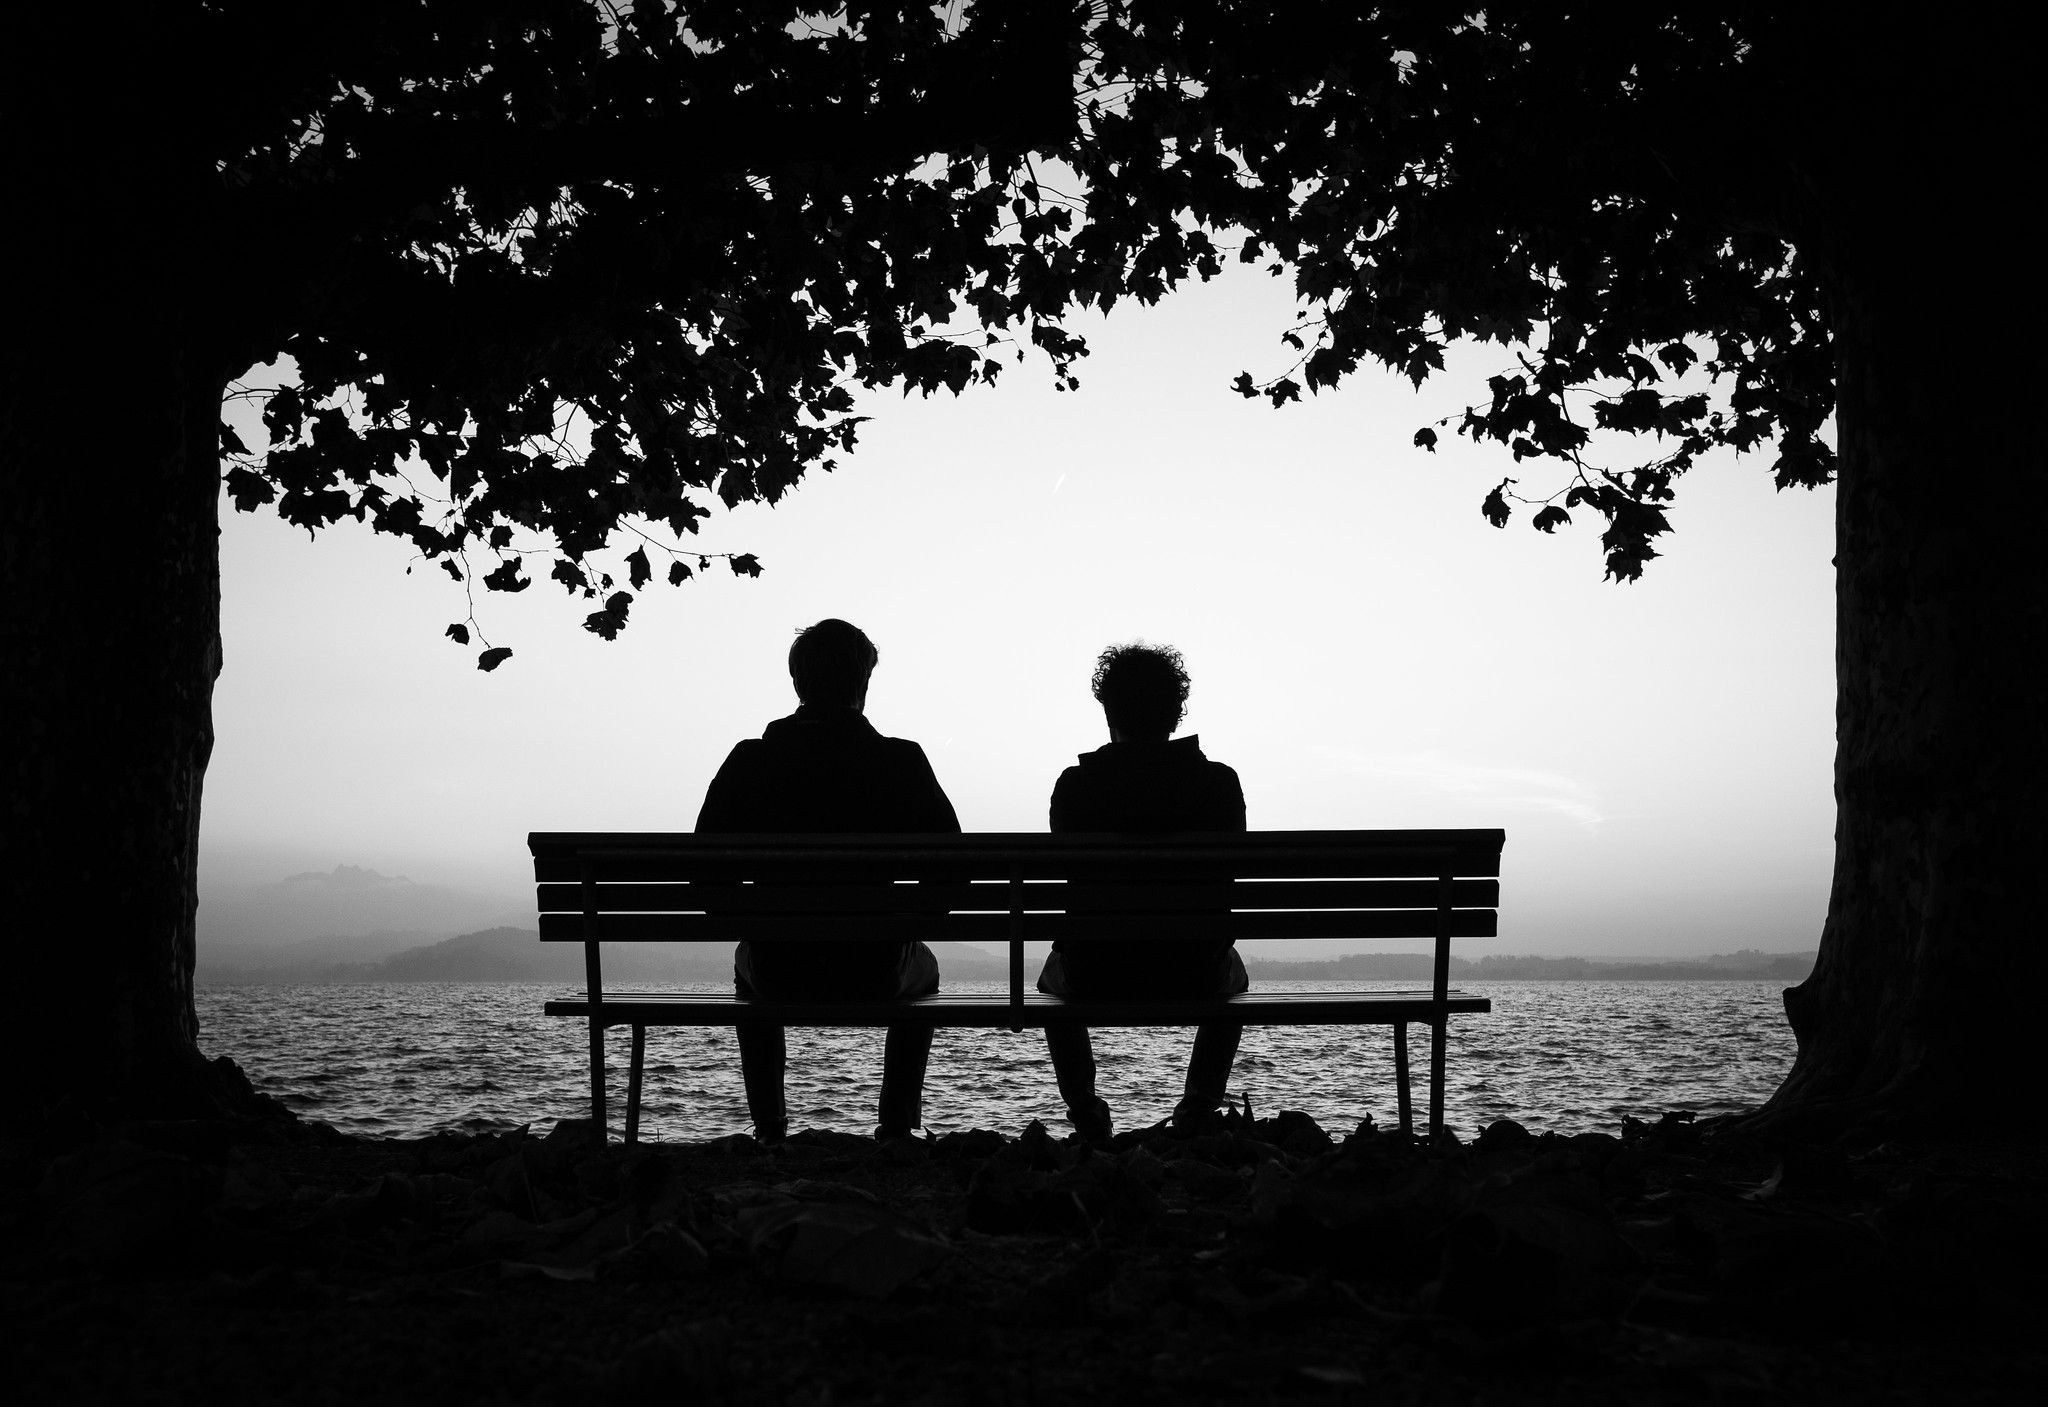 Friends sitting on bench by lake